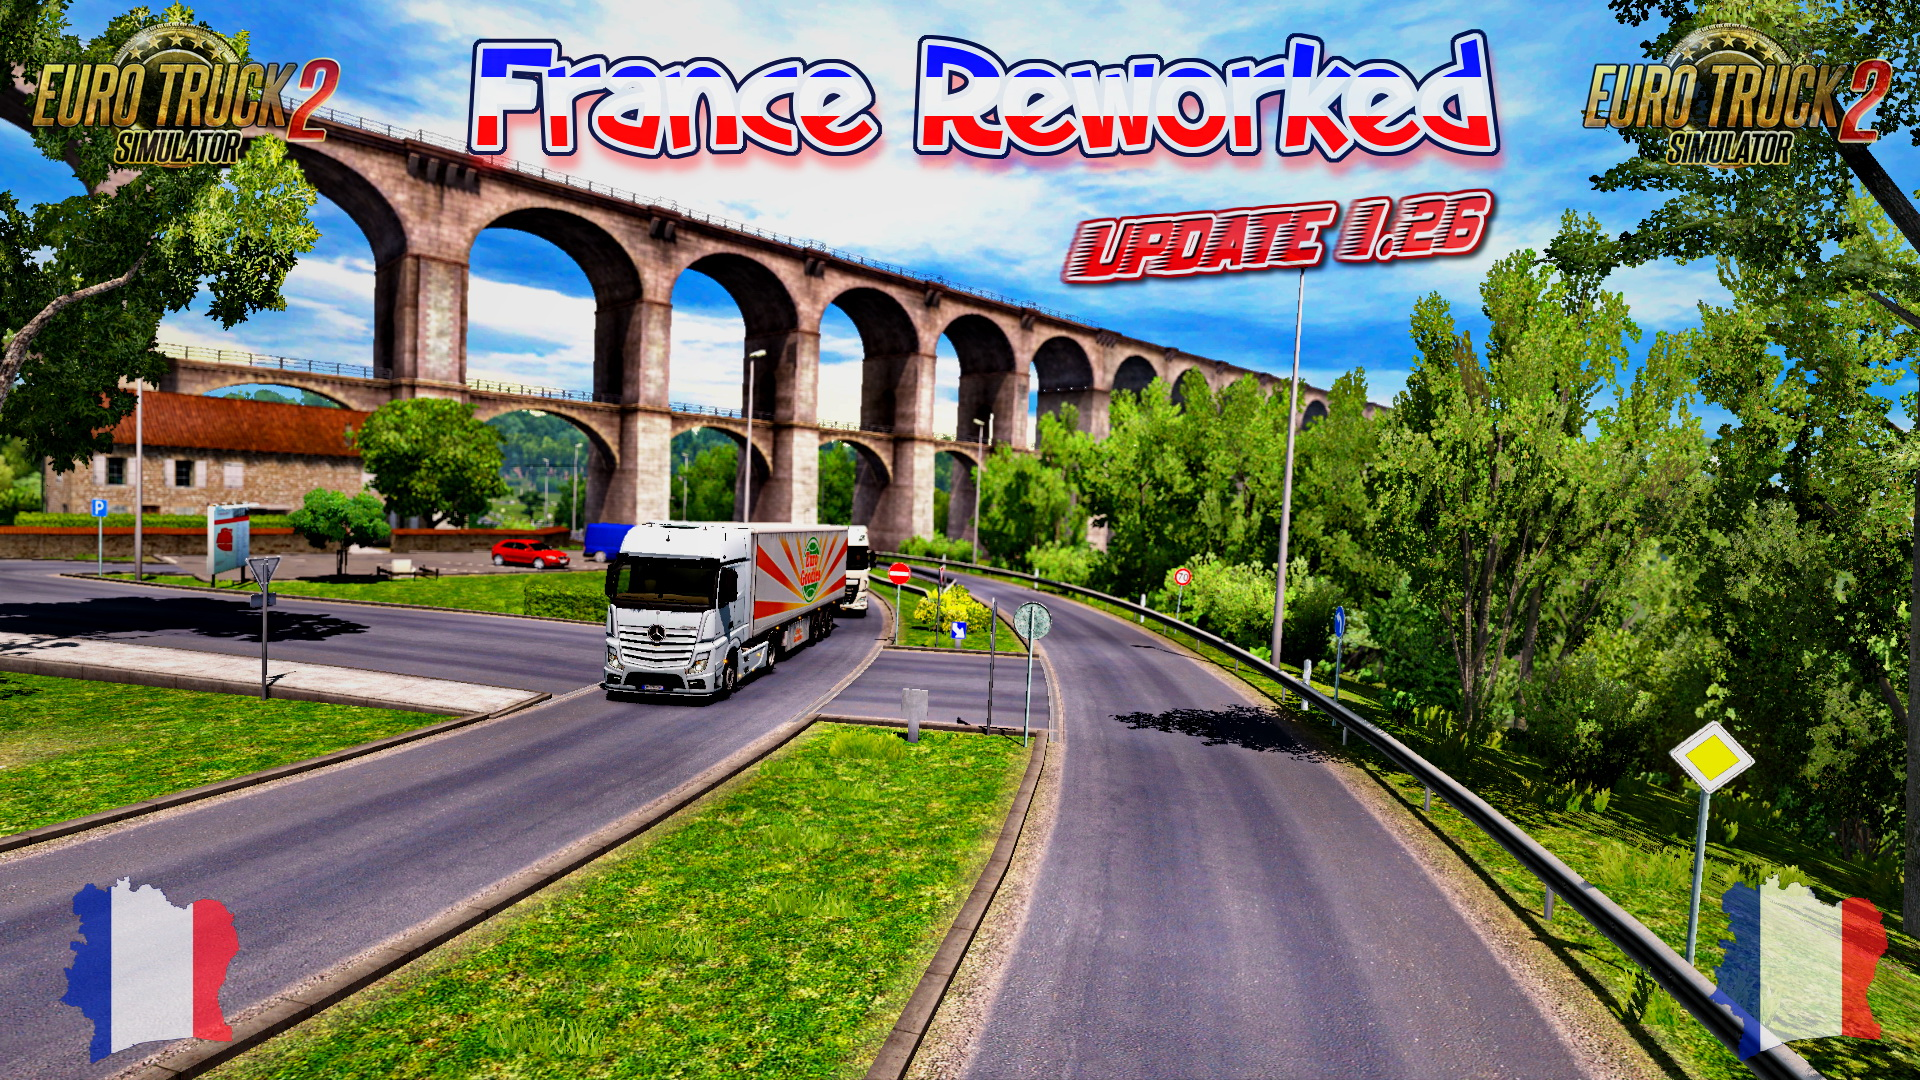 France Reworked - Update 1.26 (Euro Truck Simulator 2)